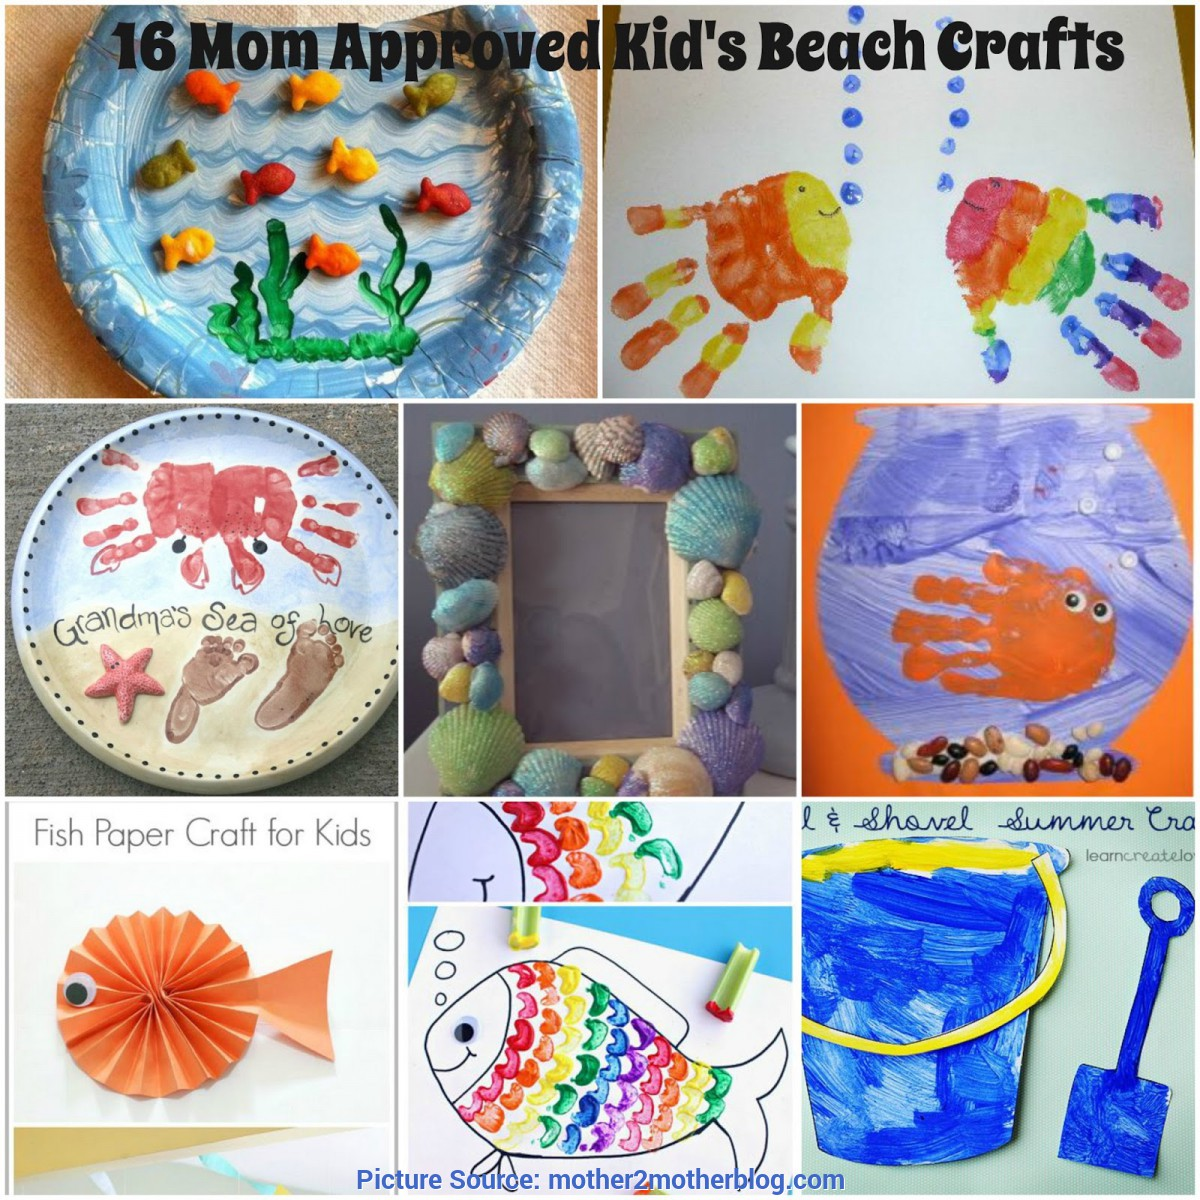 Fresh Lesson Plan For Toddlers About Beach Kid'S Activities Archives - Mother2Mother